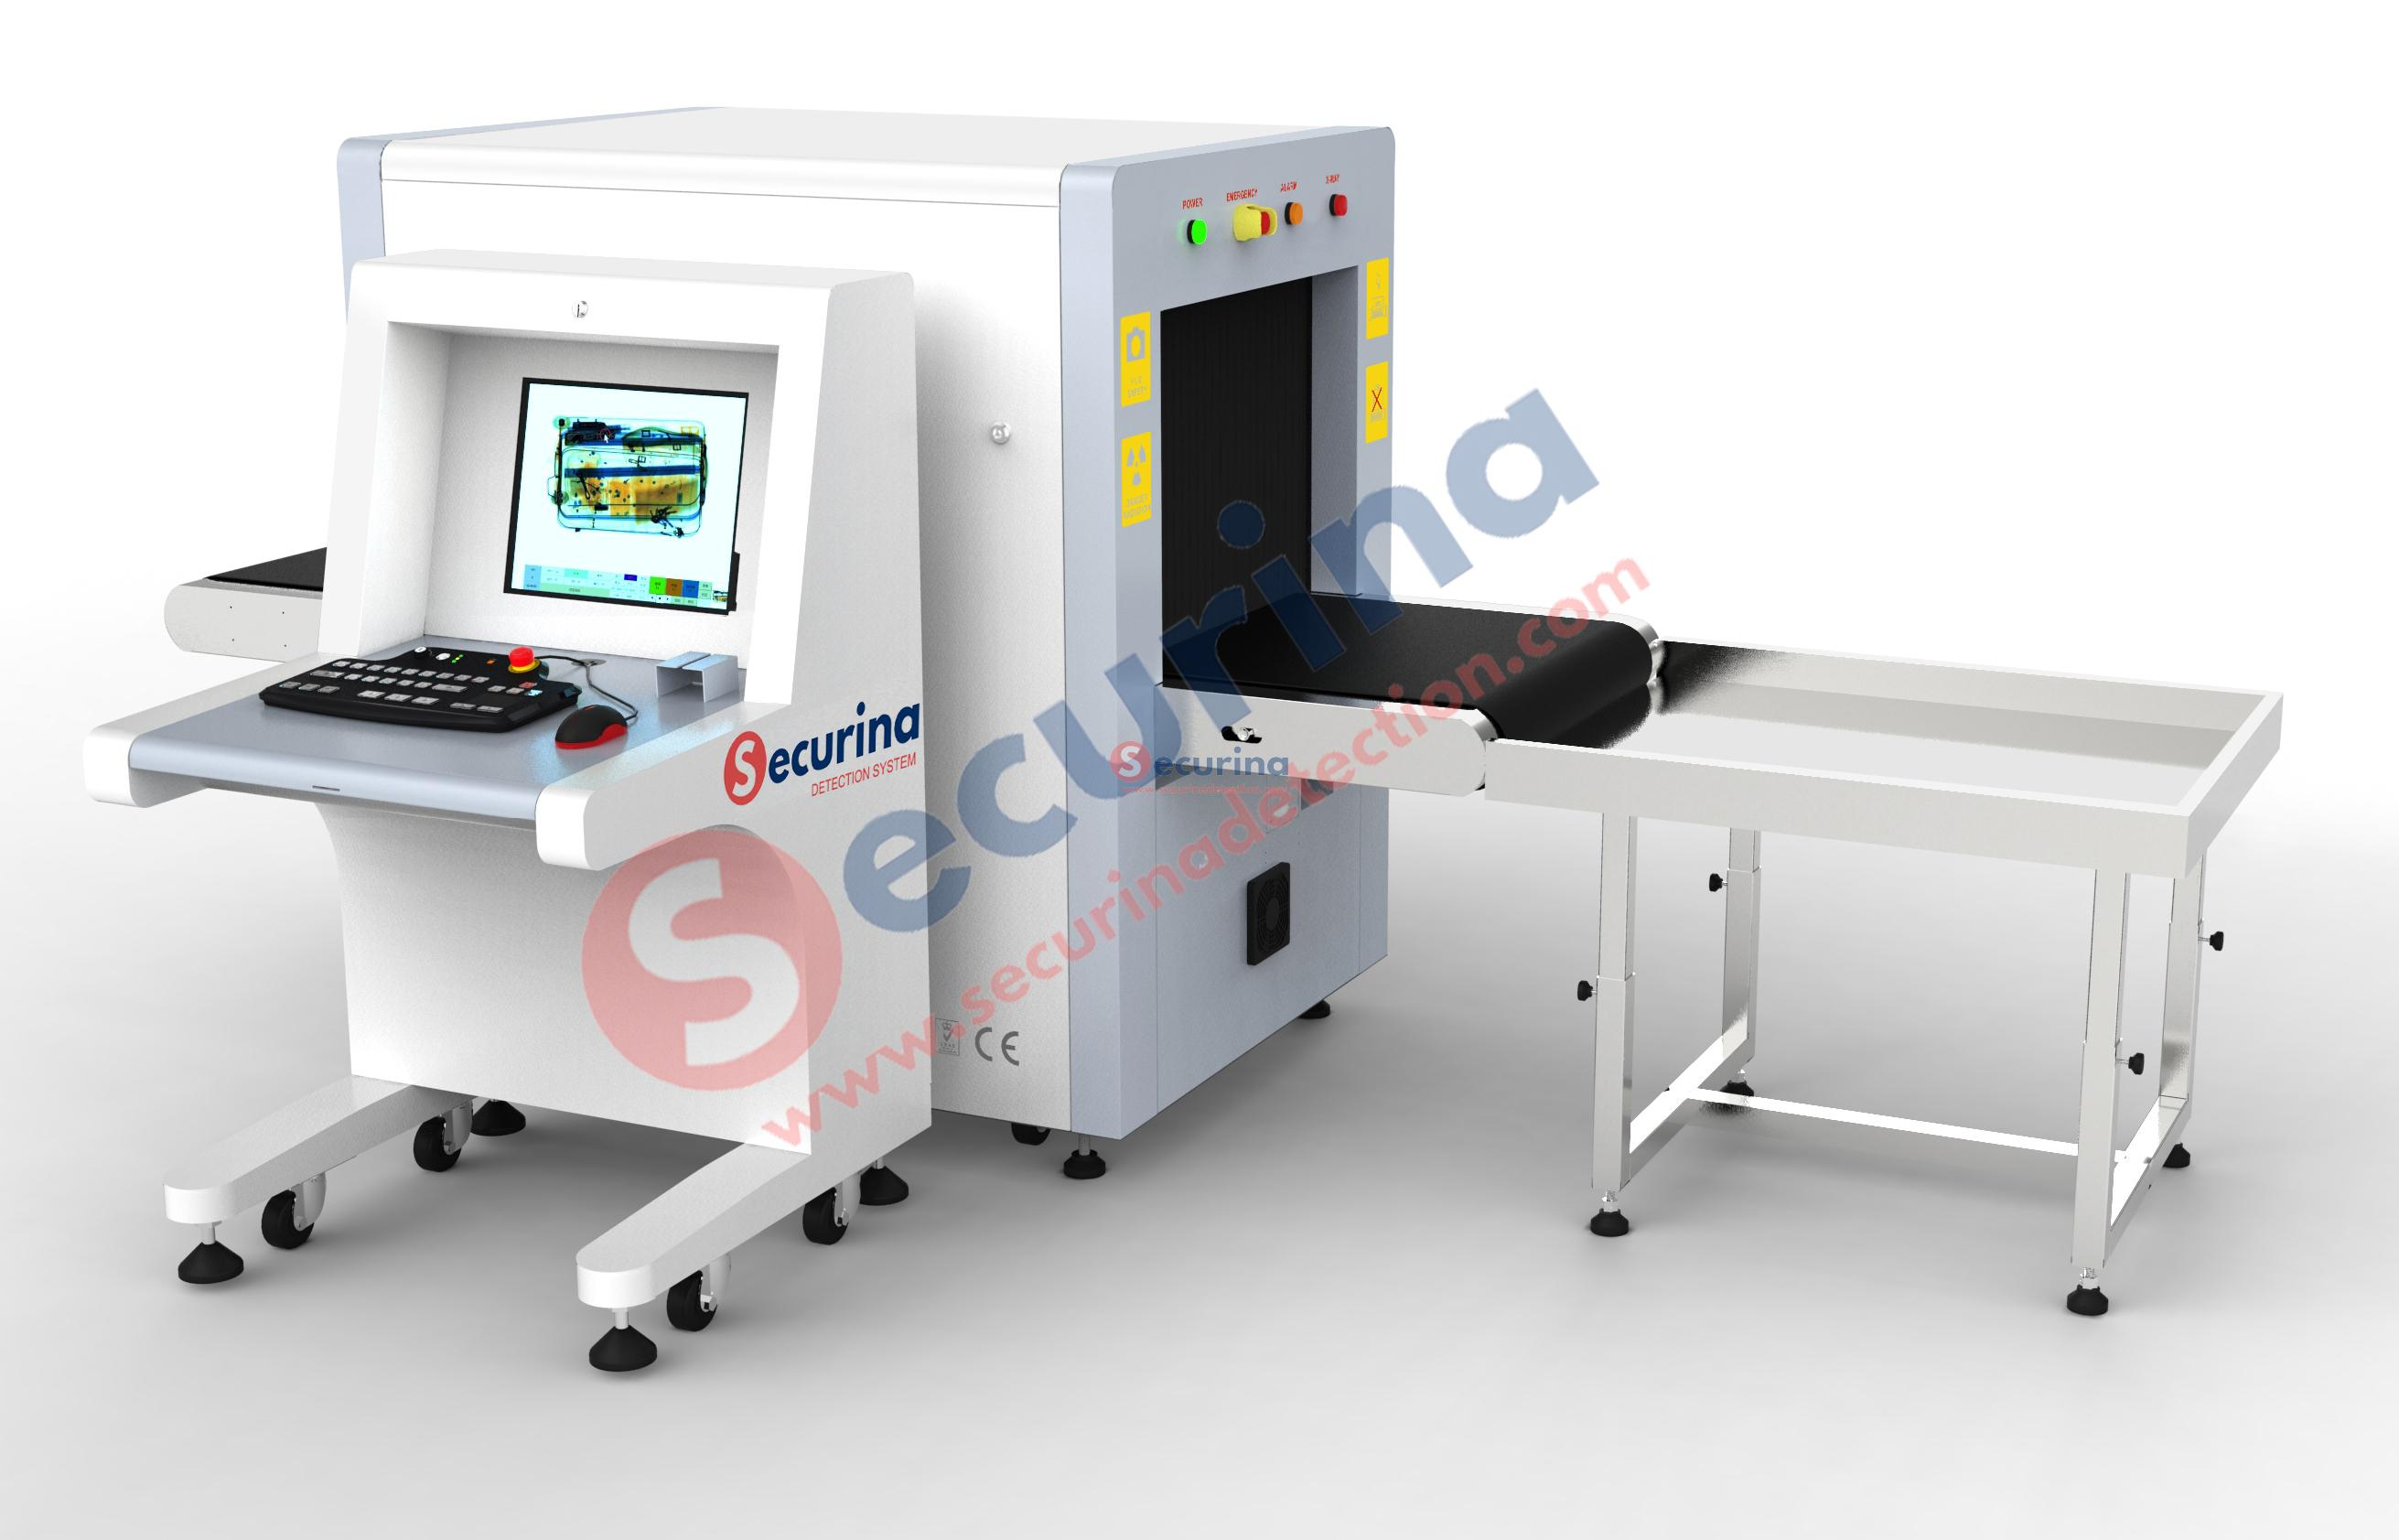 Securina-SA6550 Baggage Inspection X-ray Scanner Machine ((Suitcase/ABS/Spinner/Children toys)